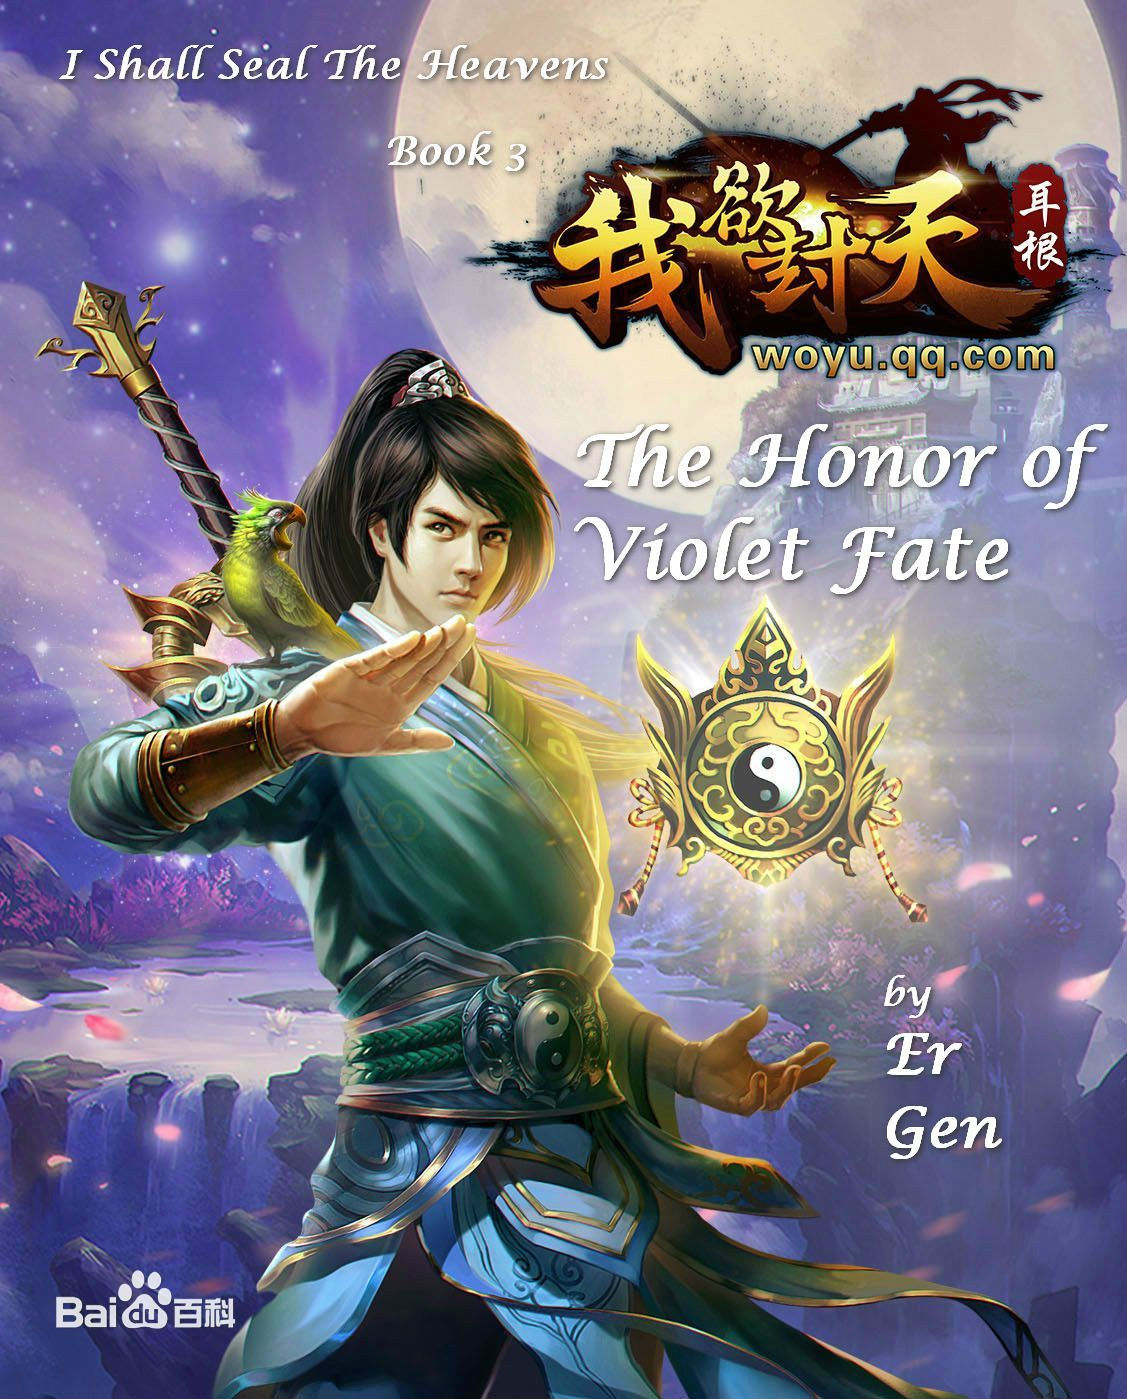 The Honor of Violet Fate (I Shall Seal the Heavens, #3) Er Gen